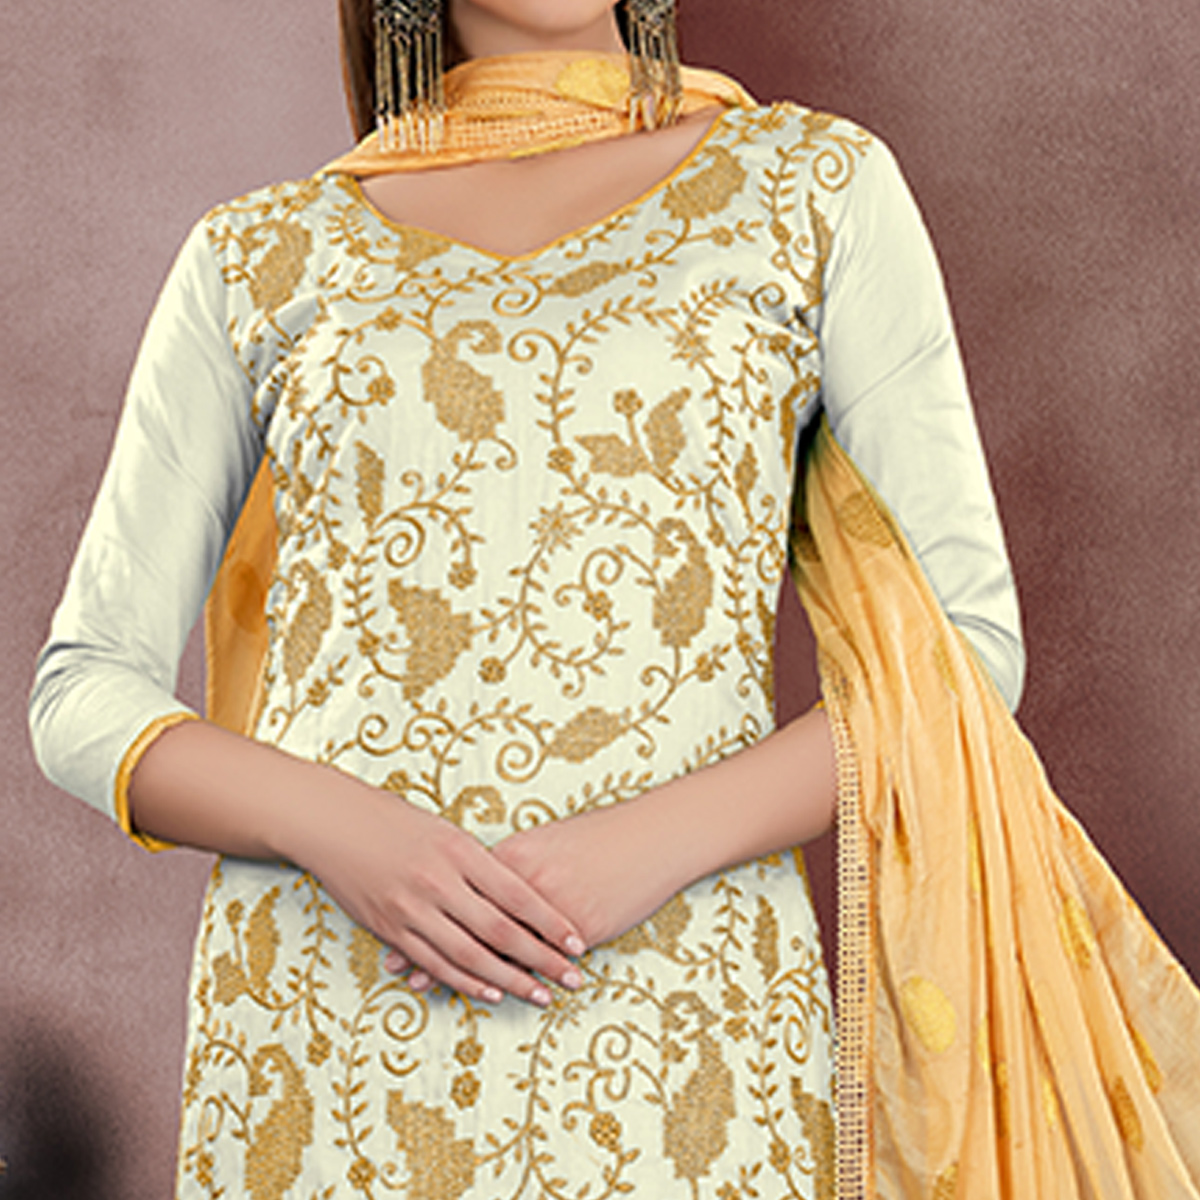 Ravishing Off White Colored Party Wear Embroidered Modal Chanderi Dress Material